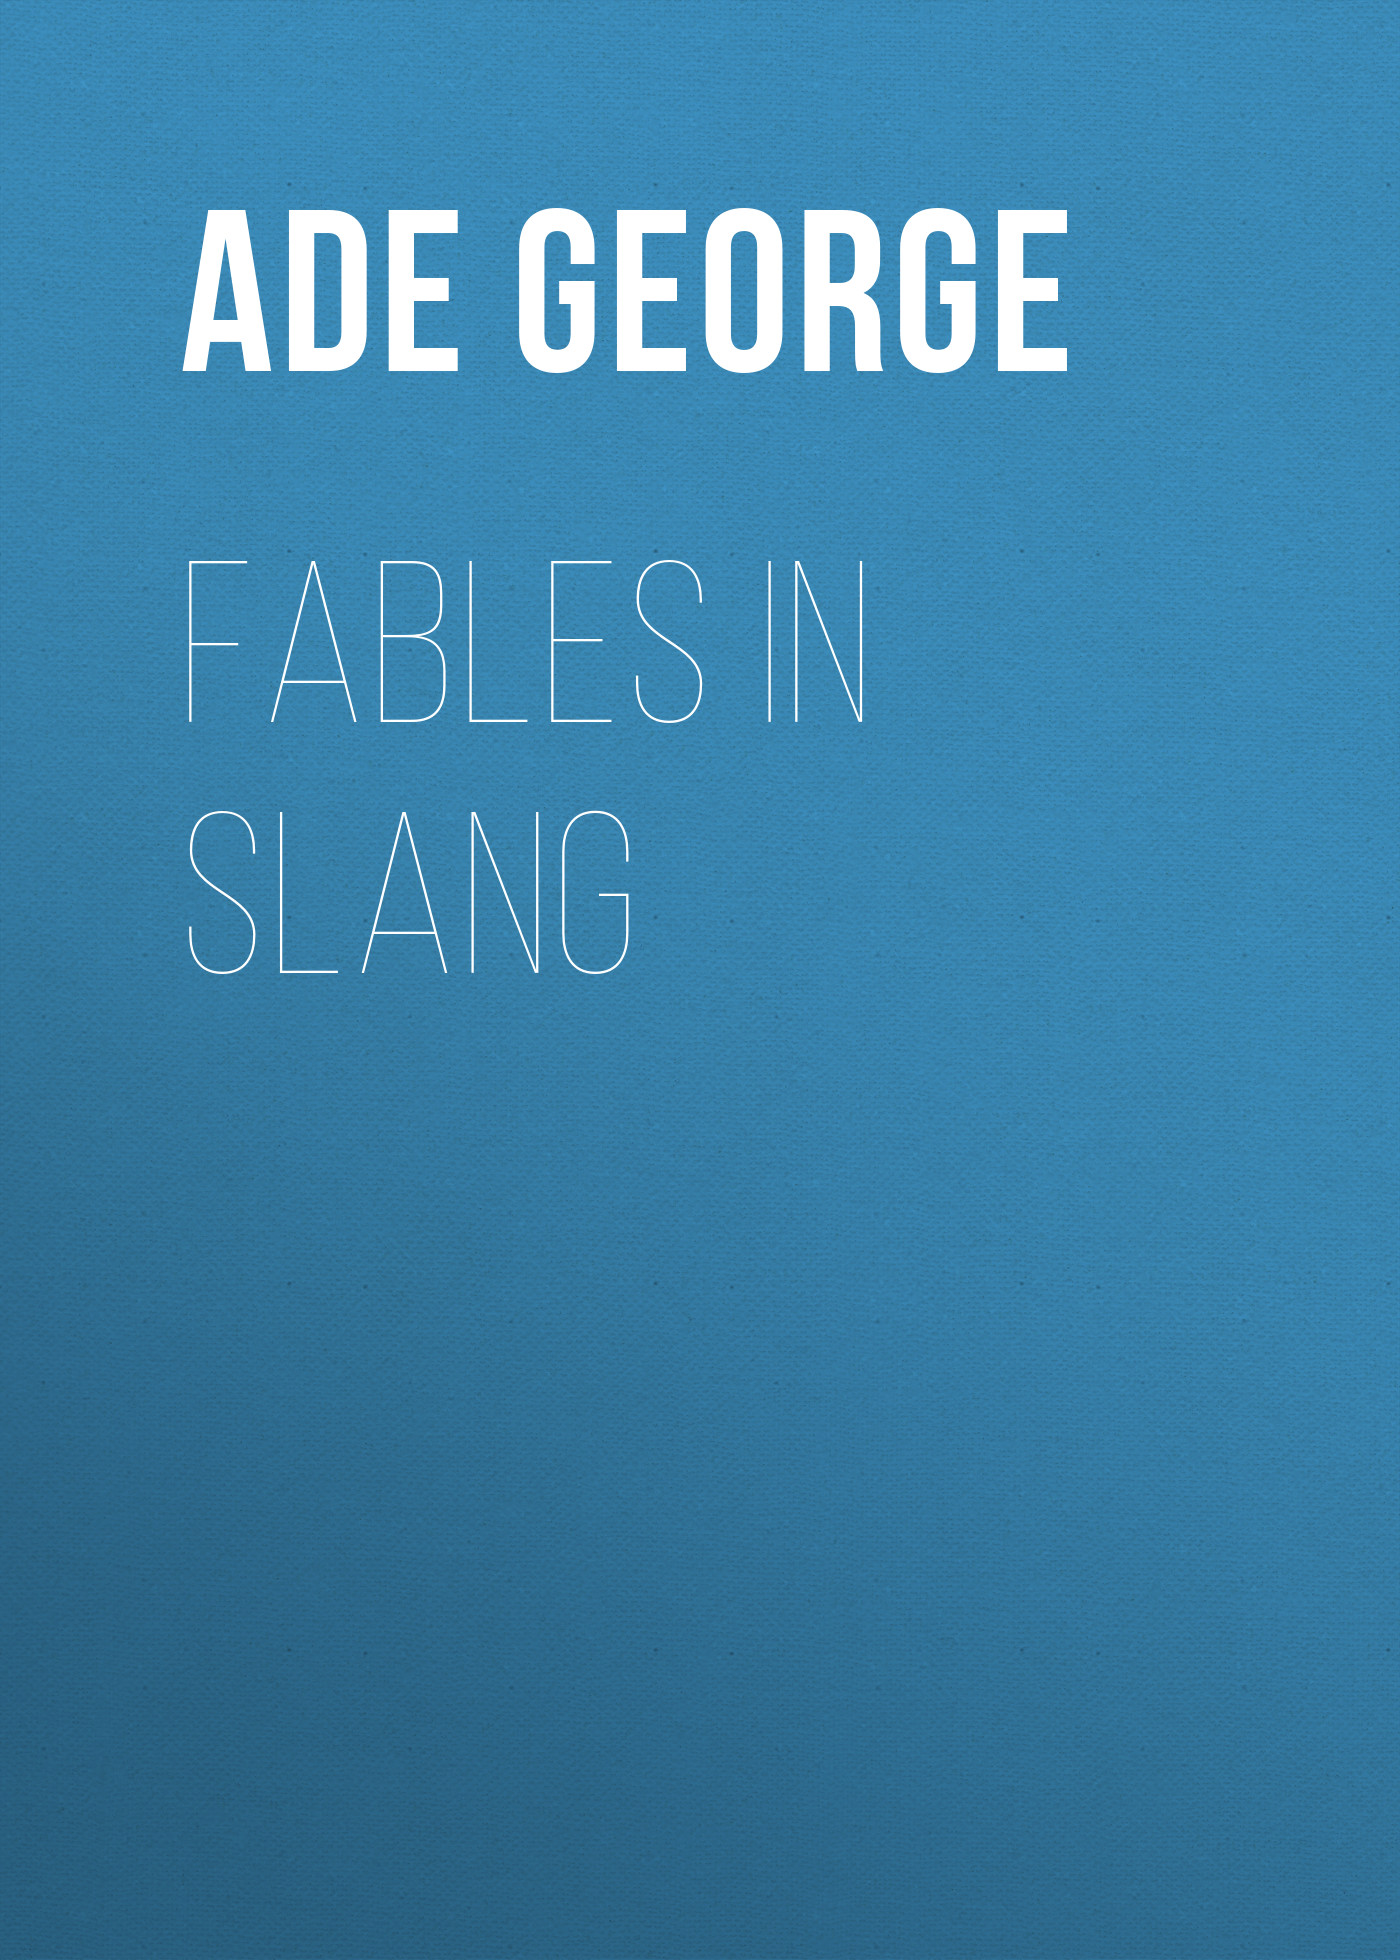 Ade George Fables in Slang